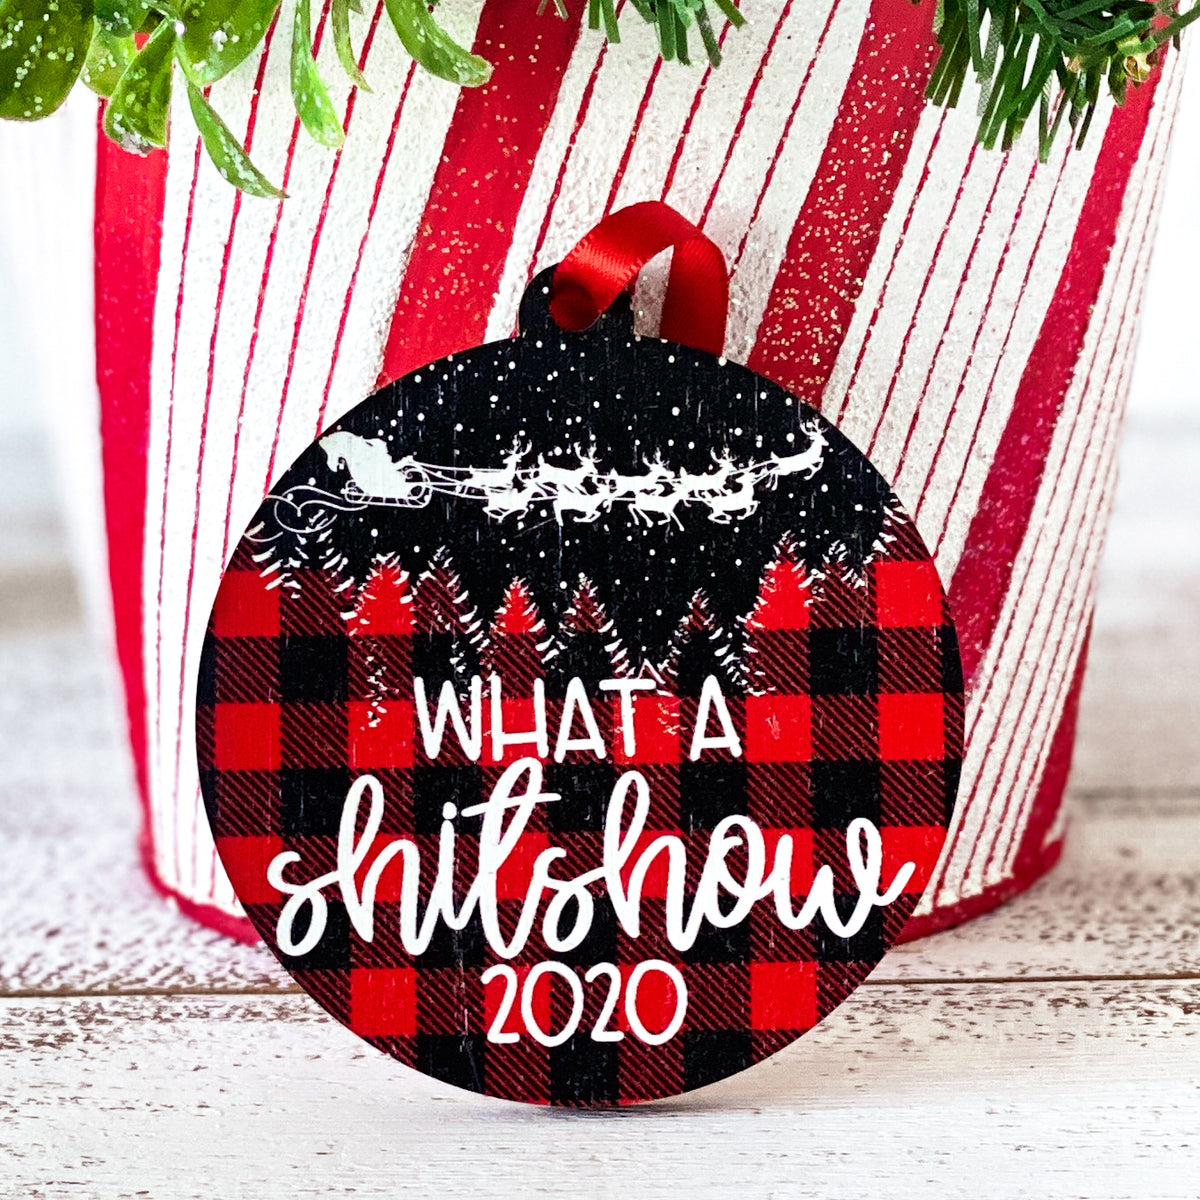 What a shitshow on round ornament. Red and black buffalo plaid background with Santa's sleigh